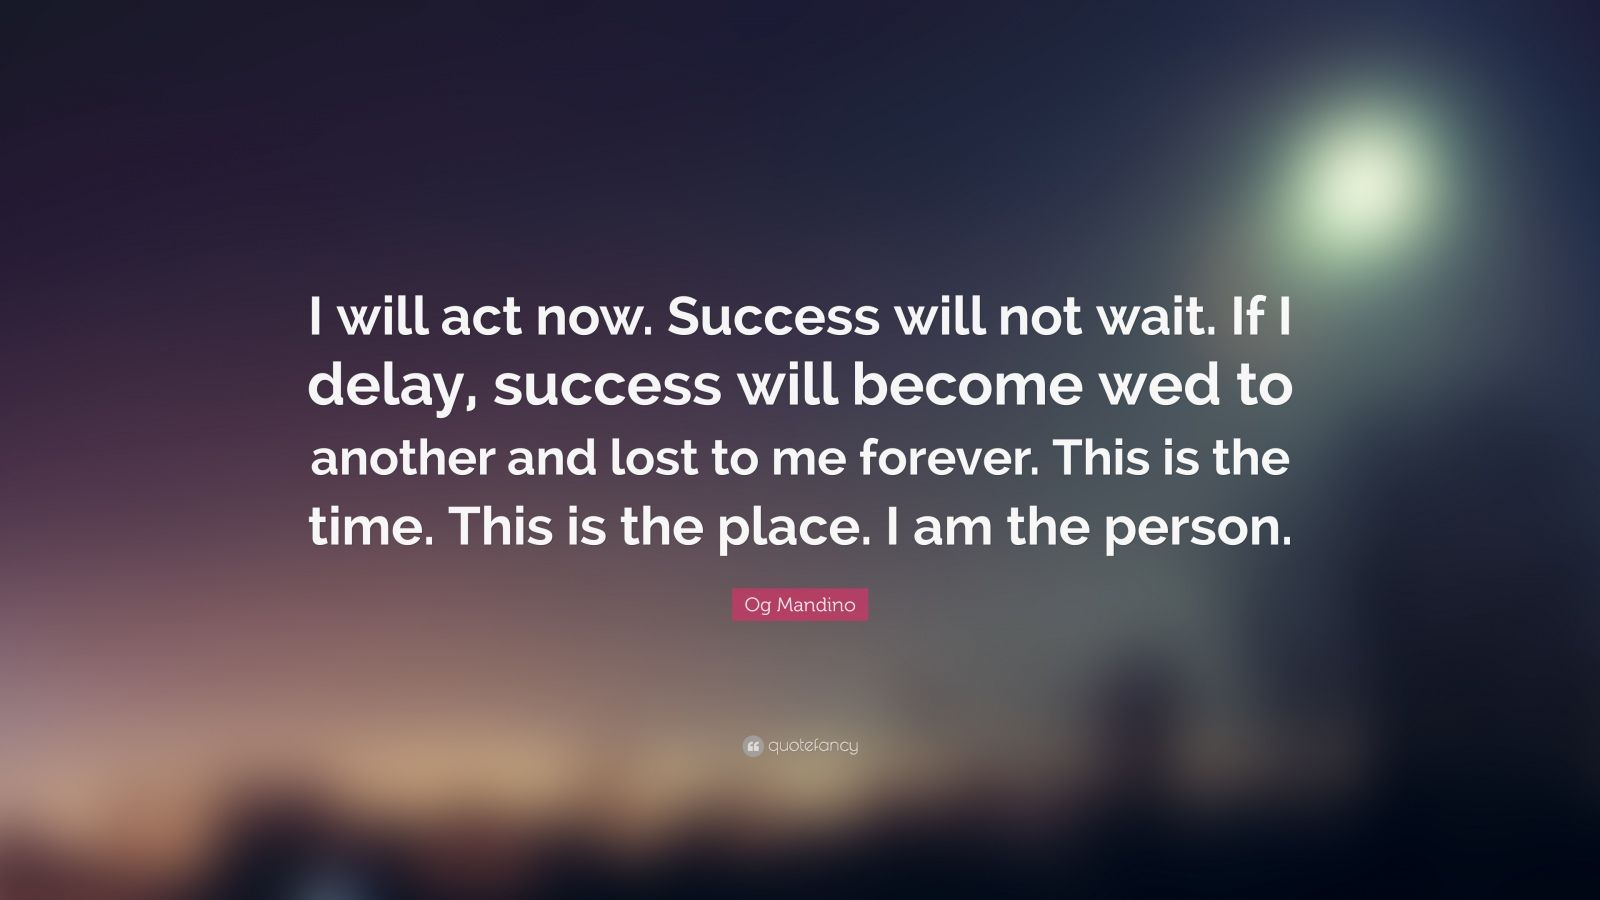 "Og Mandino Quote: ""I will act now. Success will not wait. If I delay, success will become wed to another and lost to me forever. This is the time. This is the place. I am the person."""